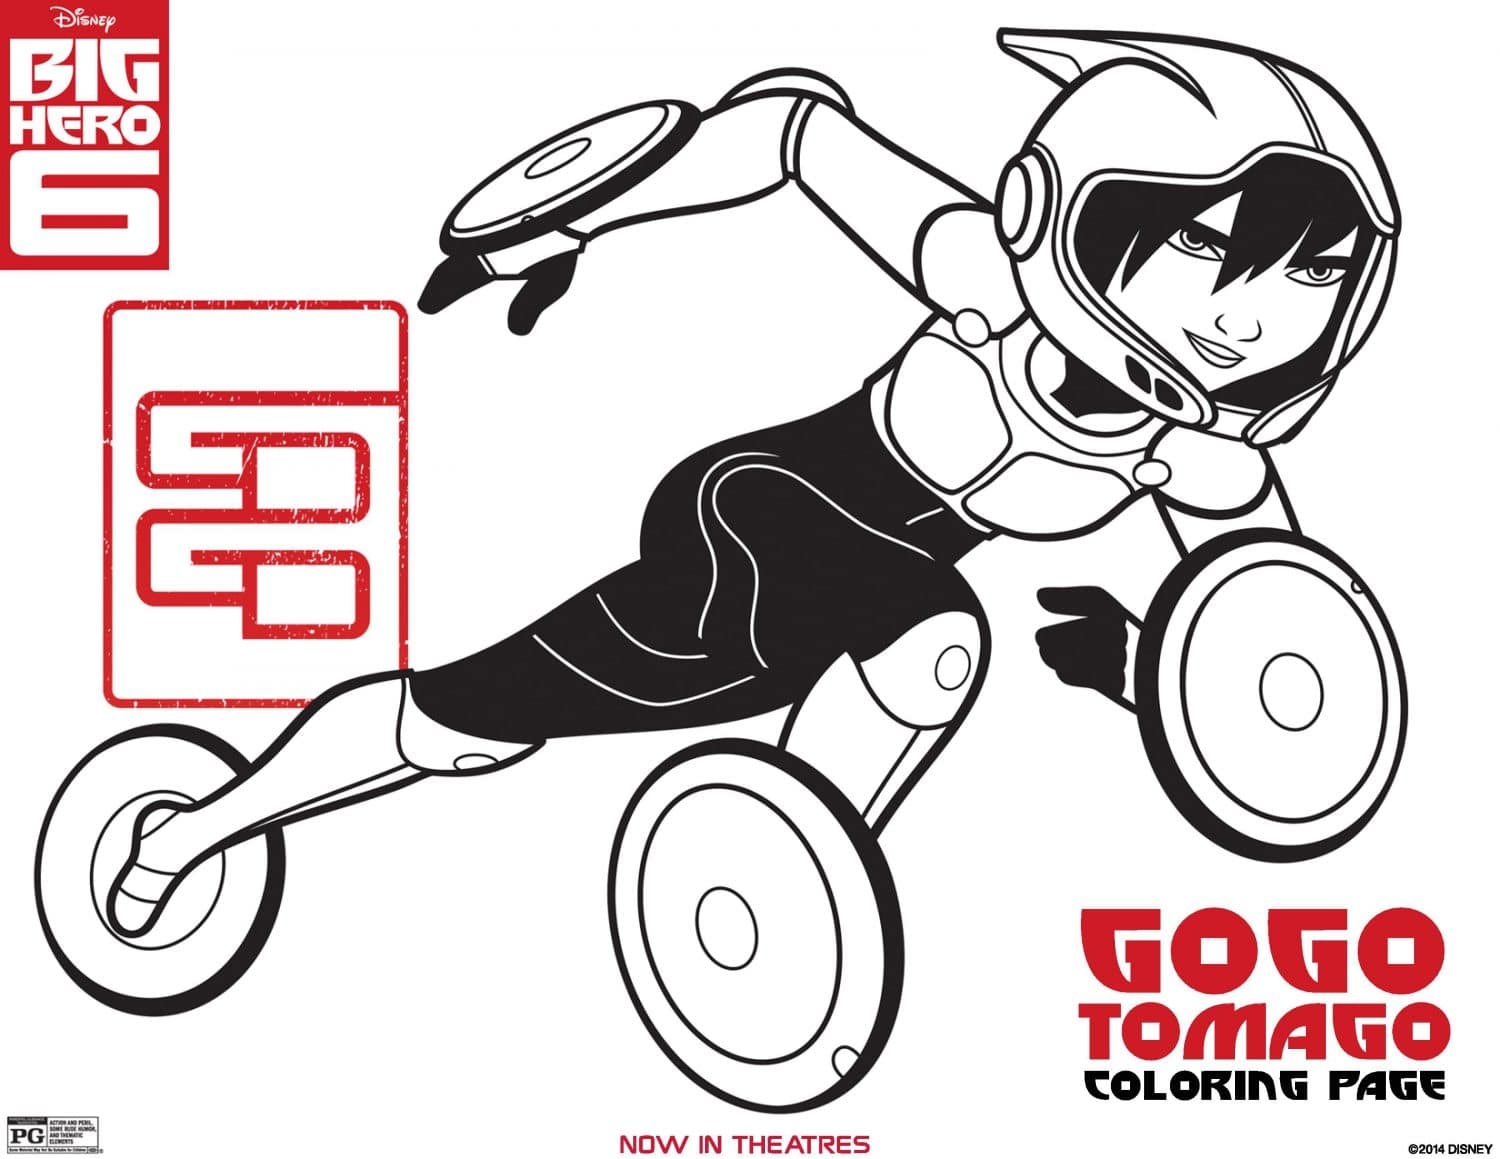 Big Hero 6 coloring page GoGo Tomago